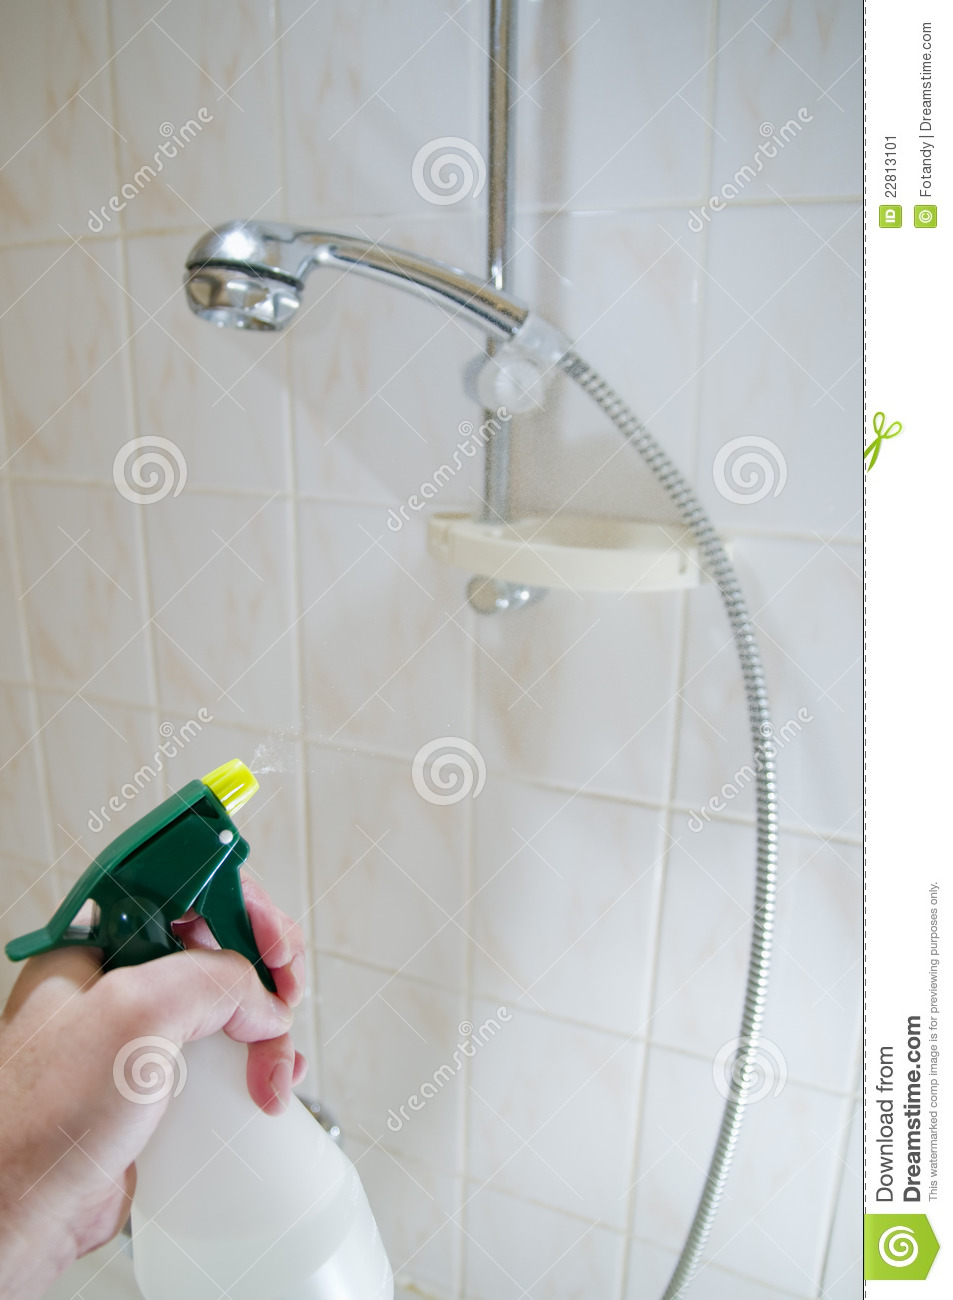 Cleaning Tile Shower Walls stock image. Image of tiled - 22813101